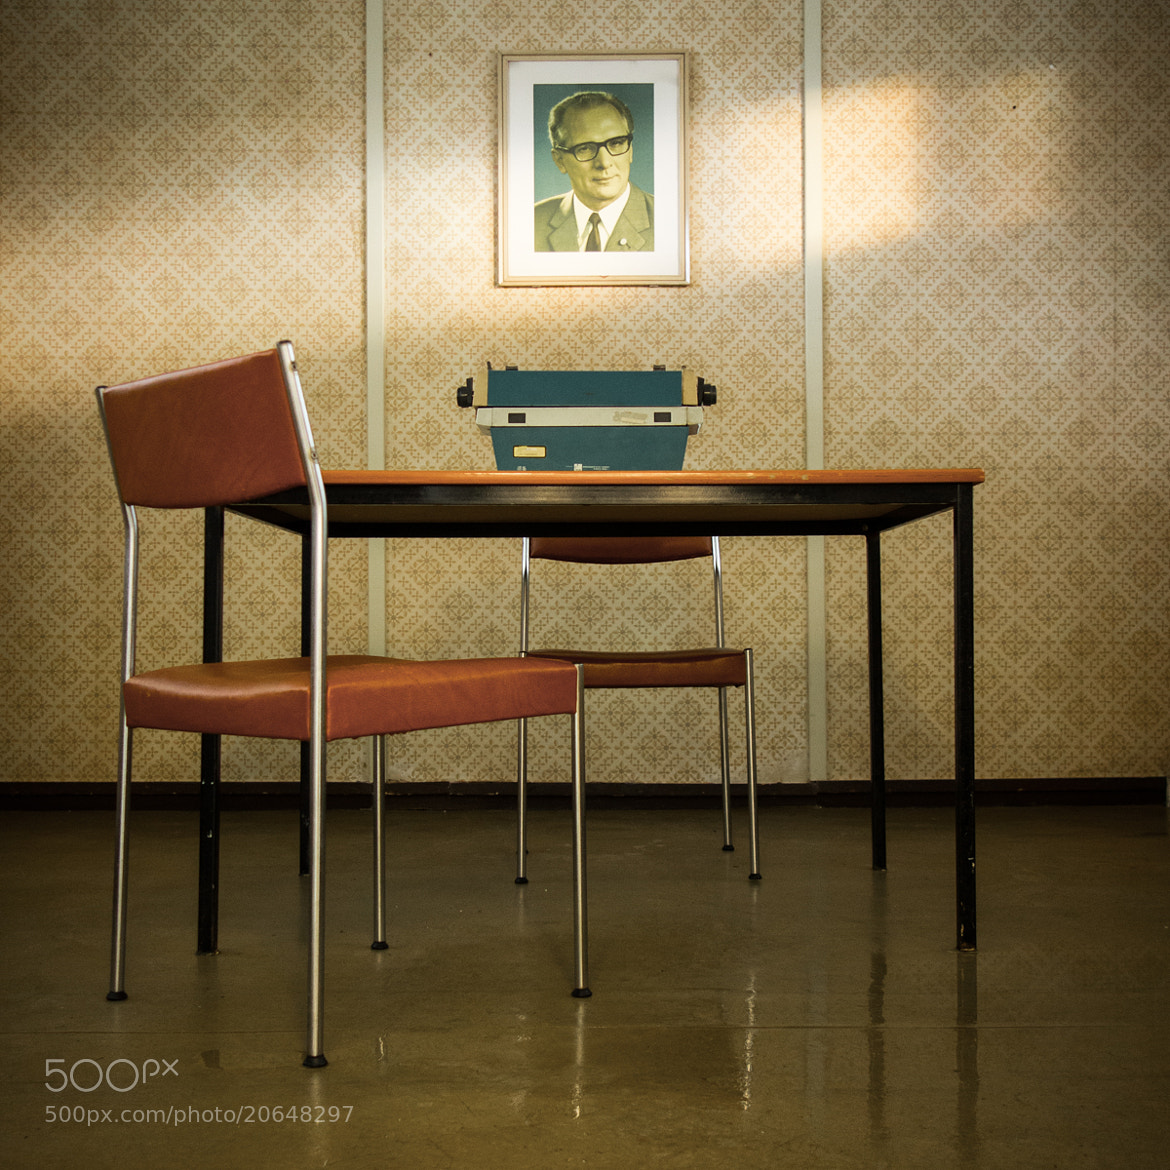 Photograph DDR office by Andrea Schuh on 500px